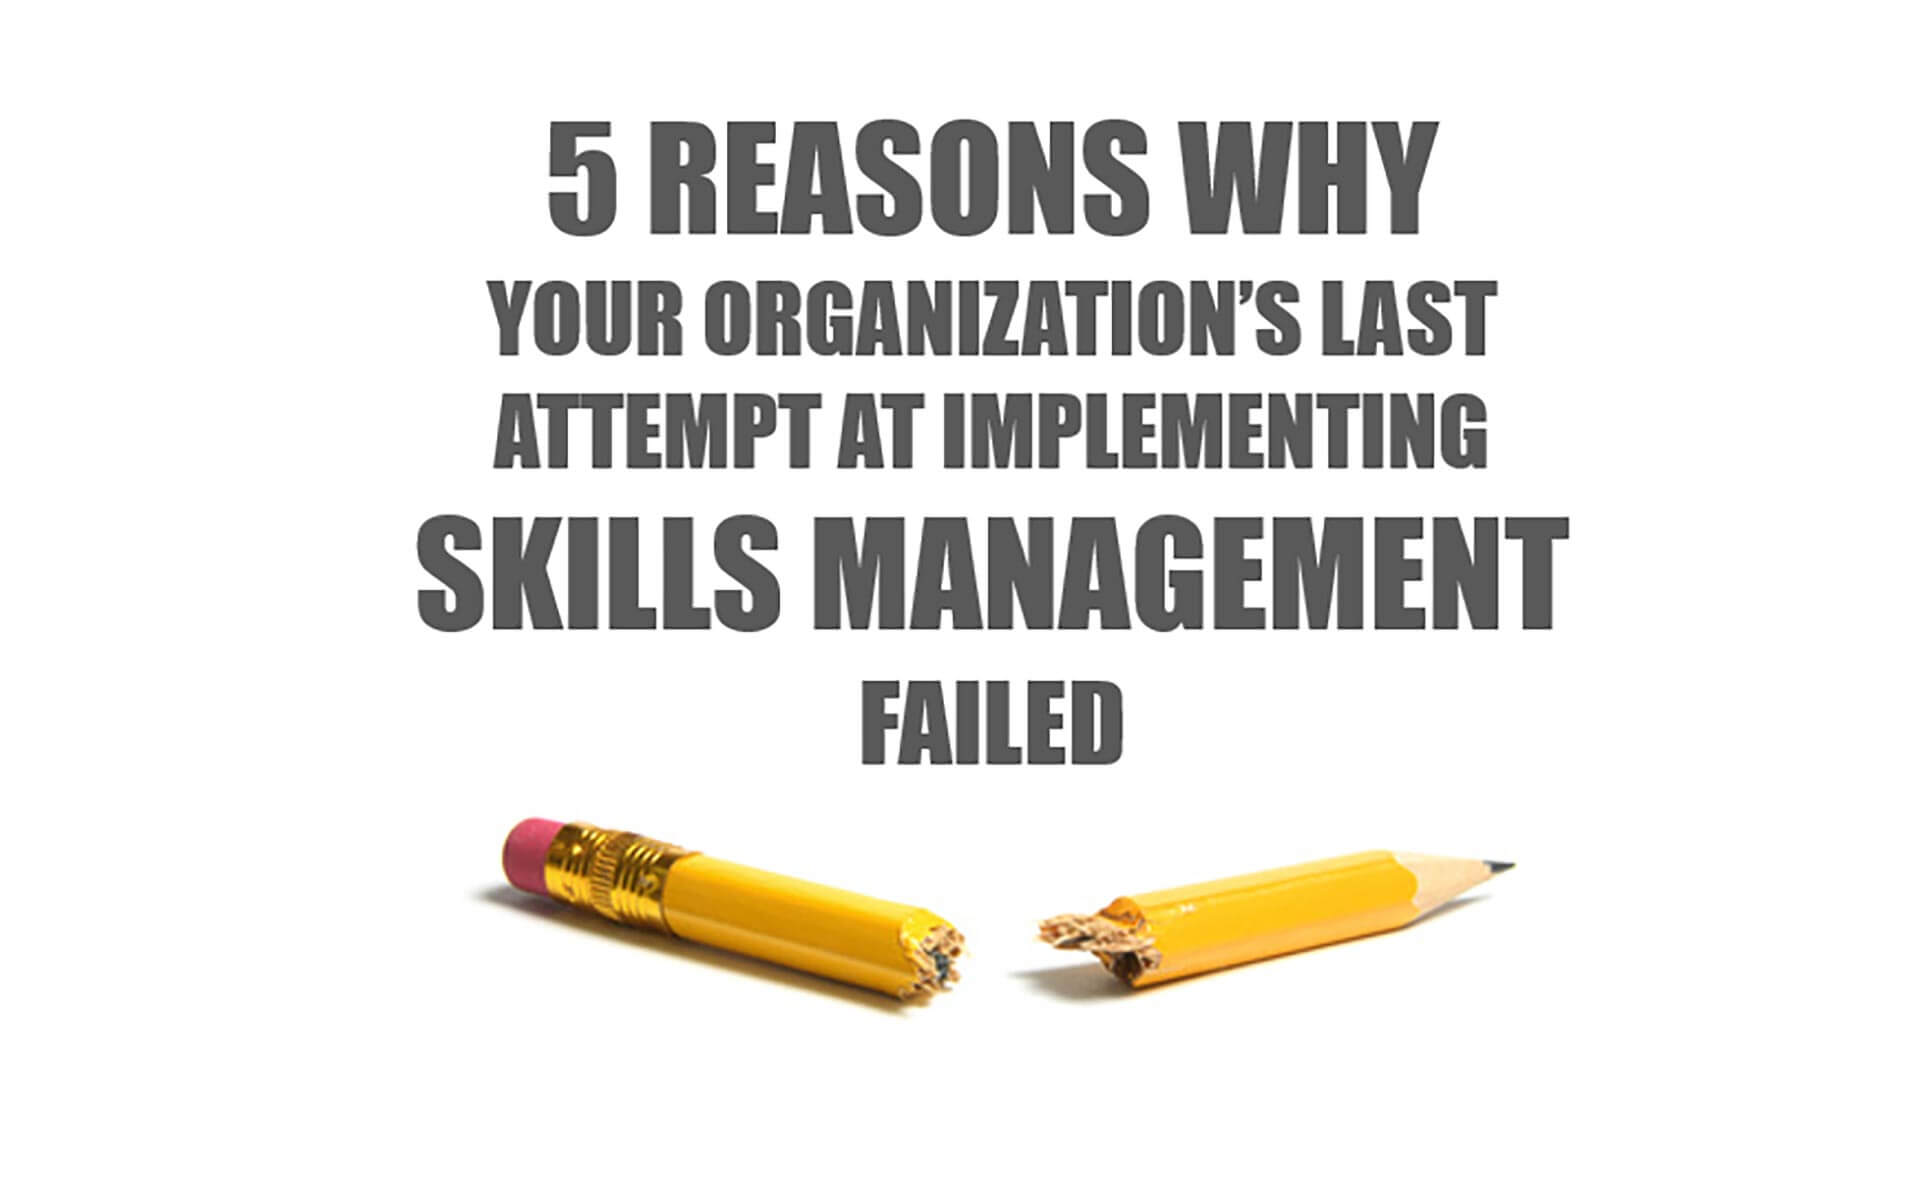 5 reasons why your organization's last attempt at implementing skills management failed